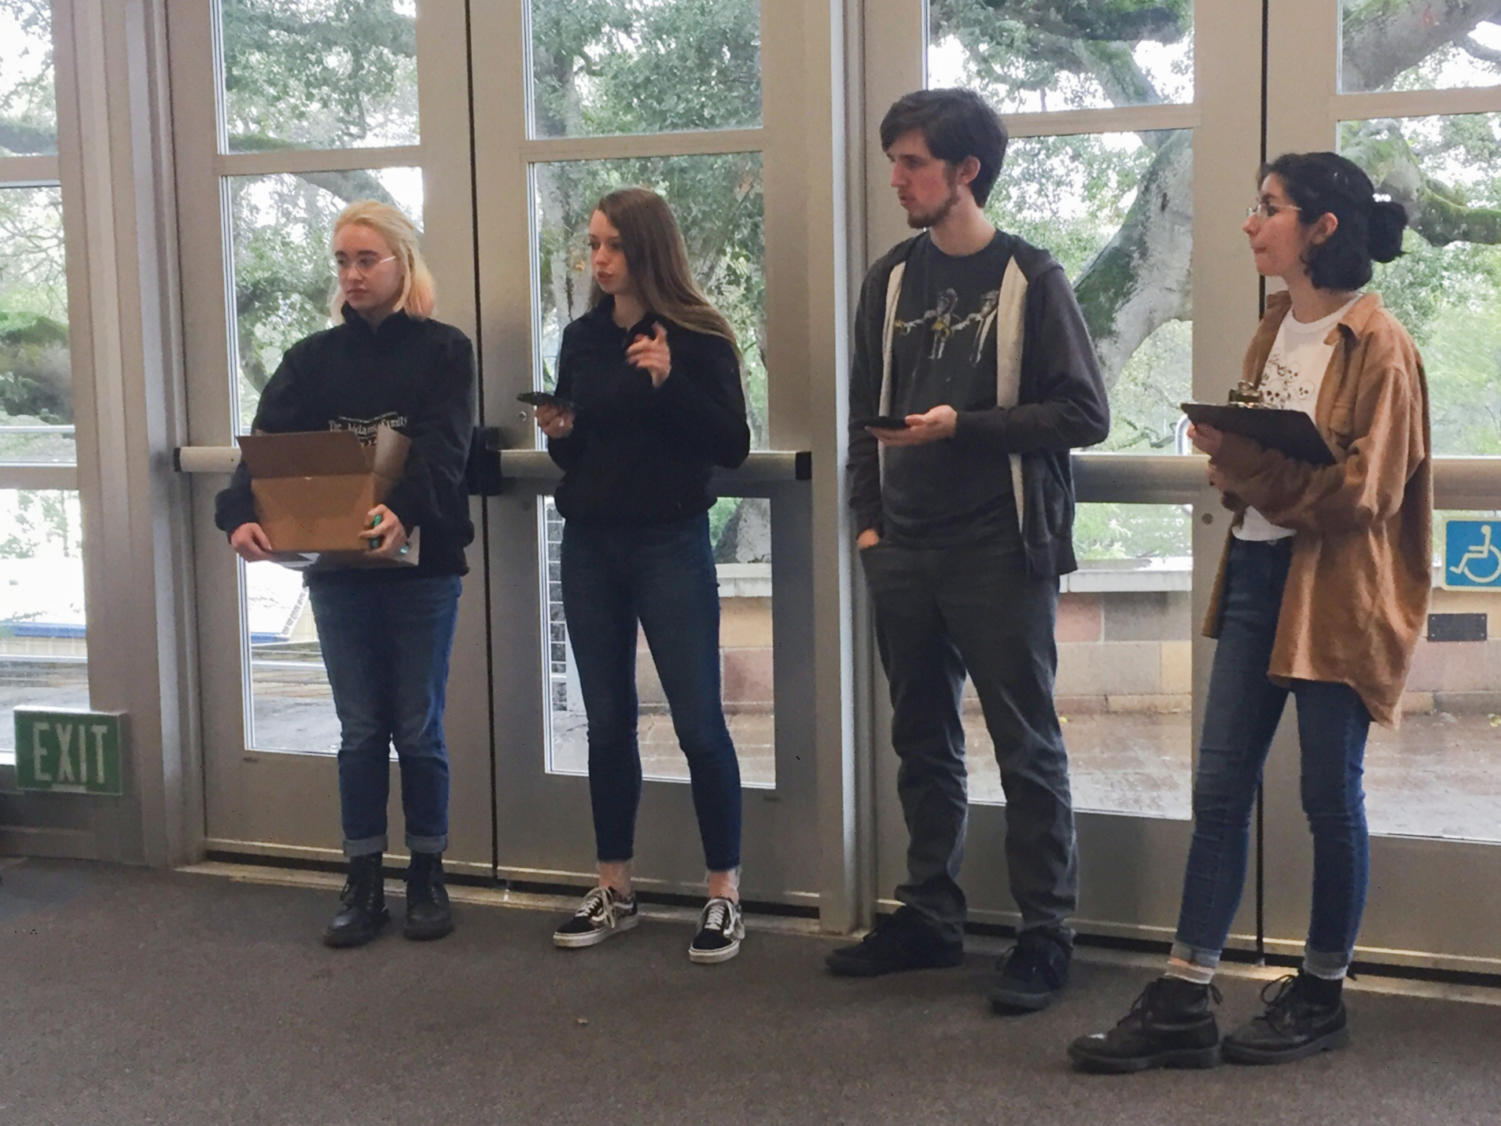 The Carlmont Technical Theatre Association's executive team makes announcements during their club meeting on Tuesday.